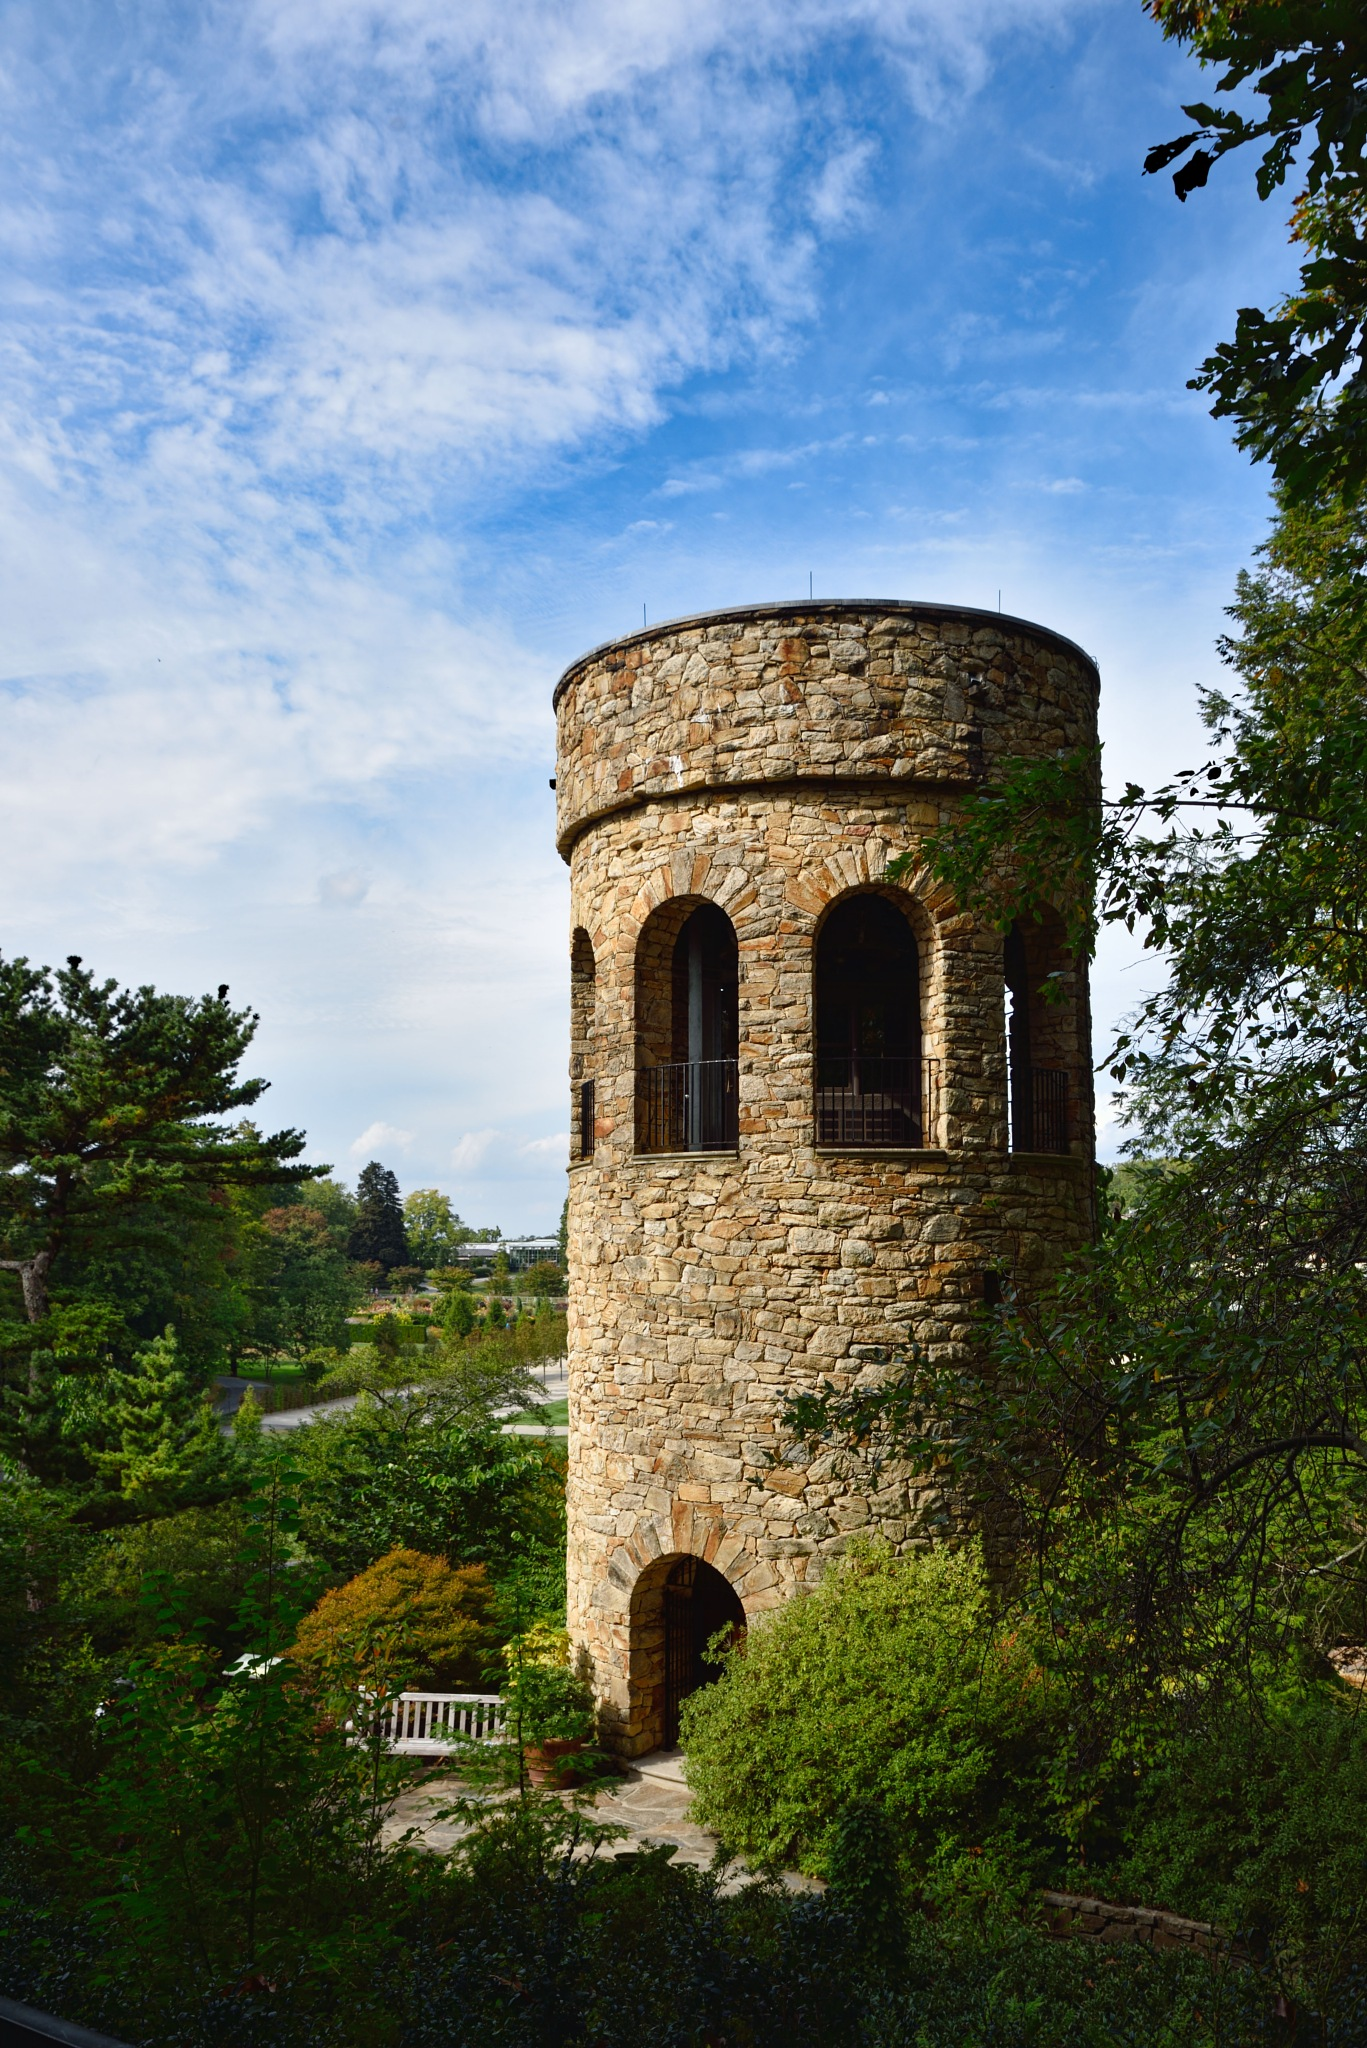 chimes tower at Longwood gardens by Dan McGovern